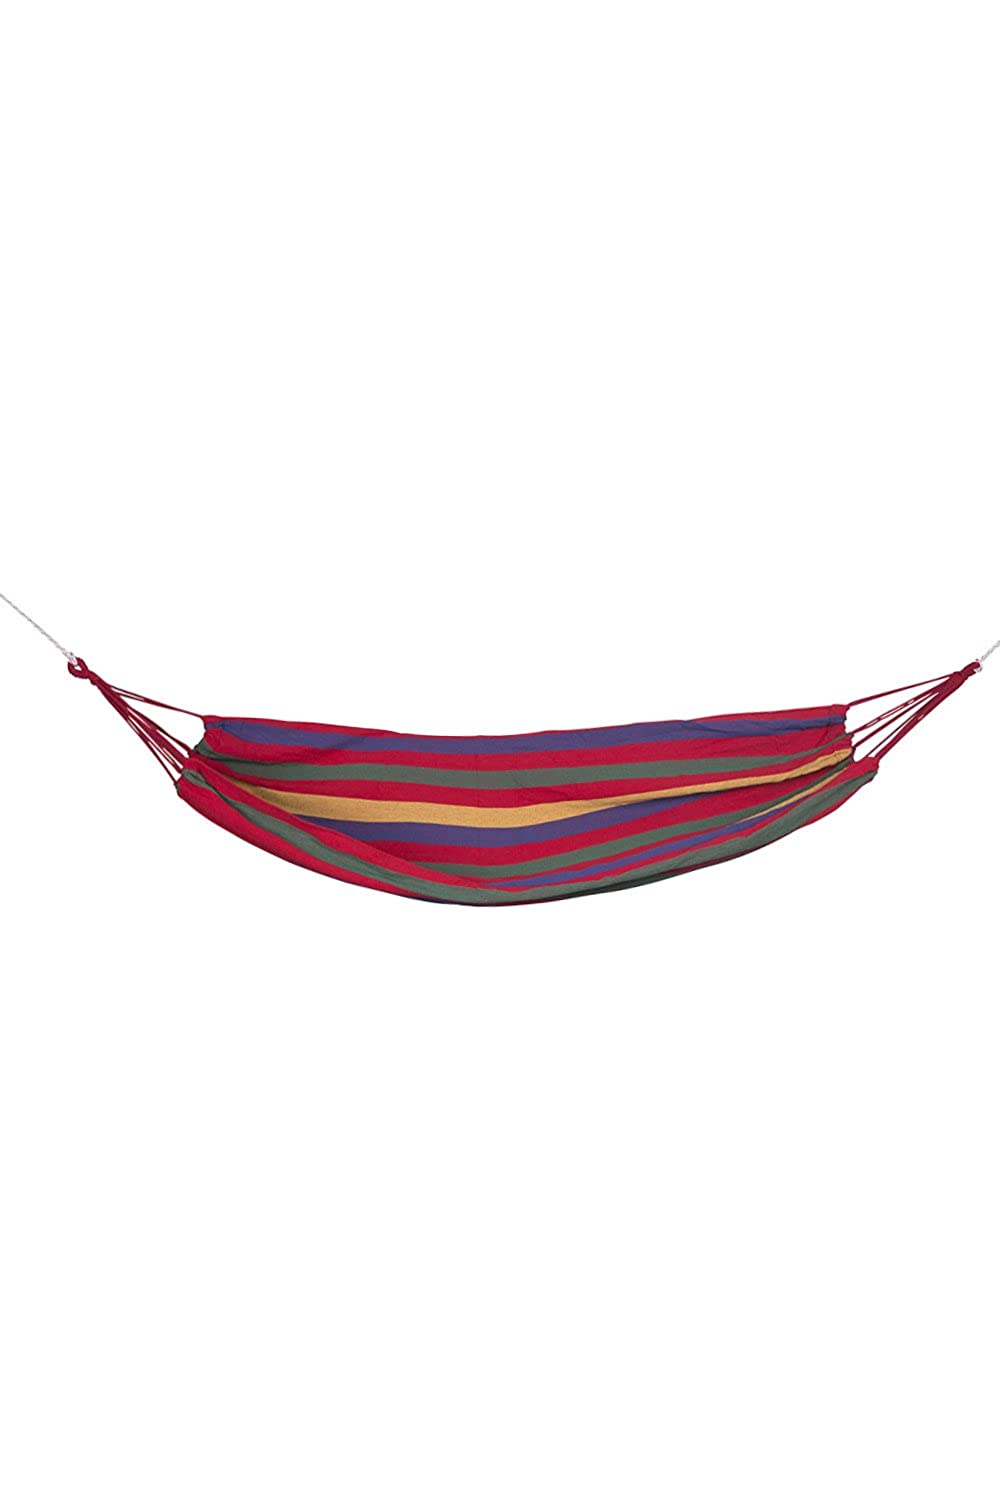 Mountain Warehouse Hammock - Colourful Stripes Outdoor Hammock, Durable Straps Hammock Tent, Easy Use Hanging Chair -For Garden, Summer Camping, Travel & Indoor